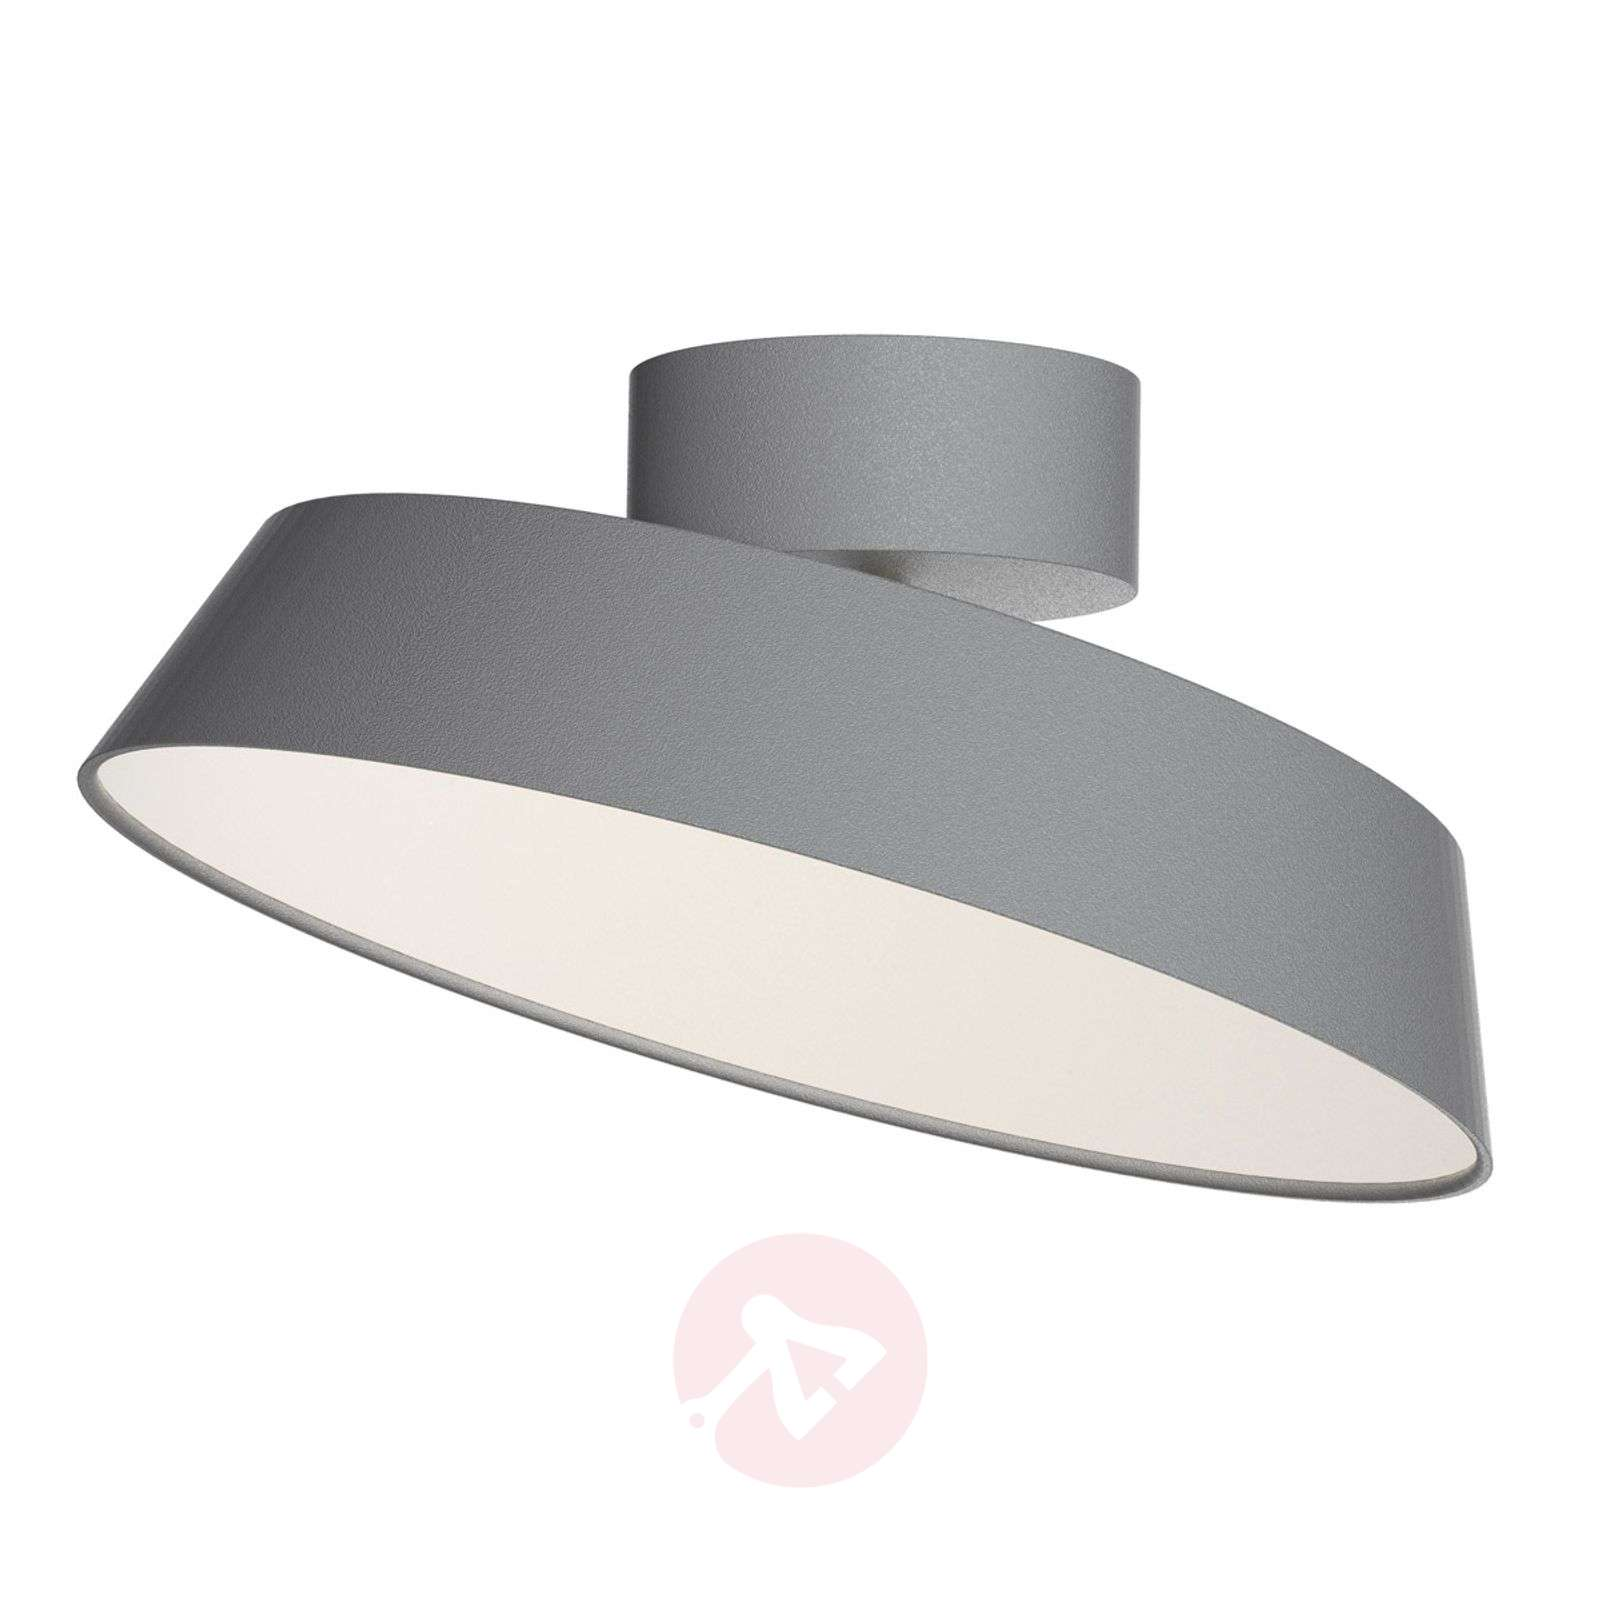 Grey Alba LED ceiling light with pivotable shade-7005962-01